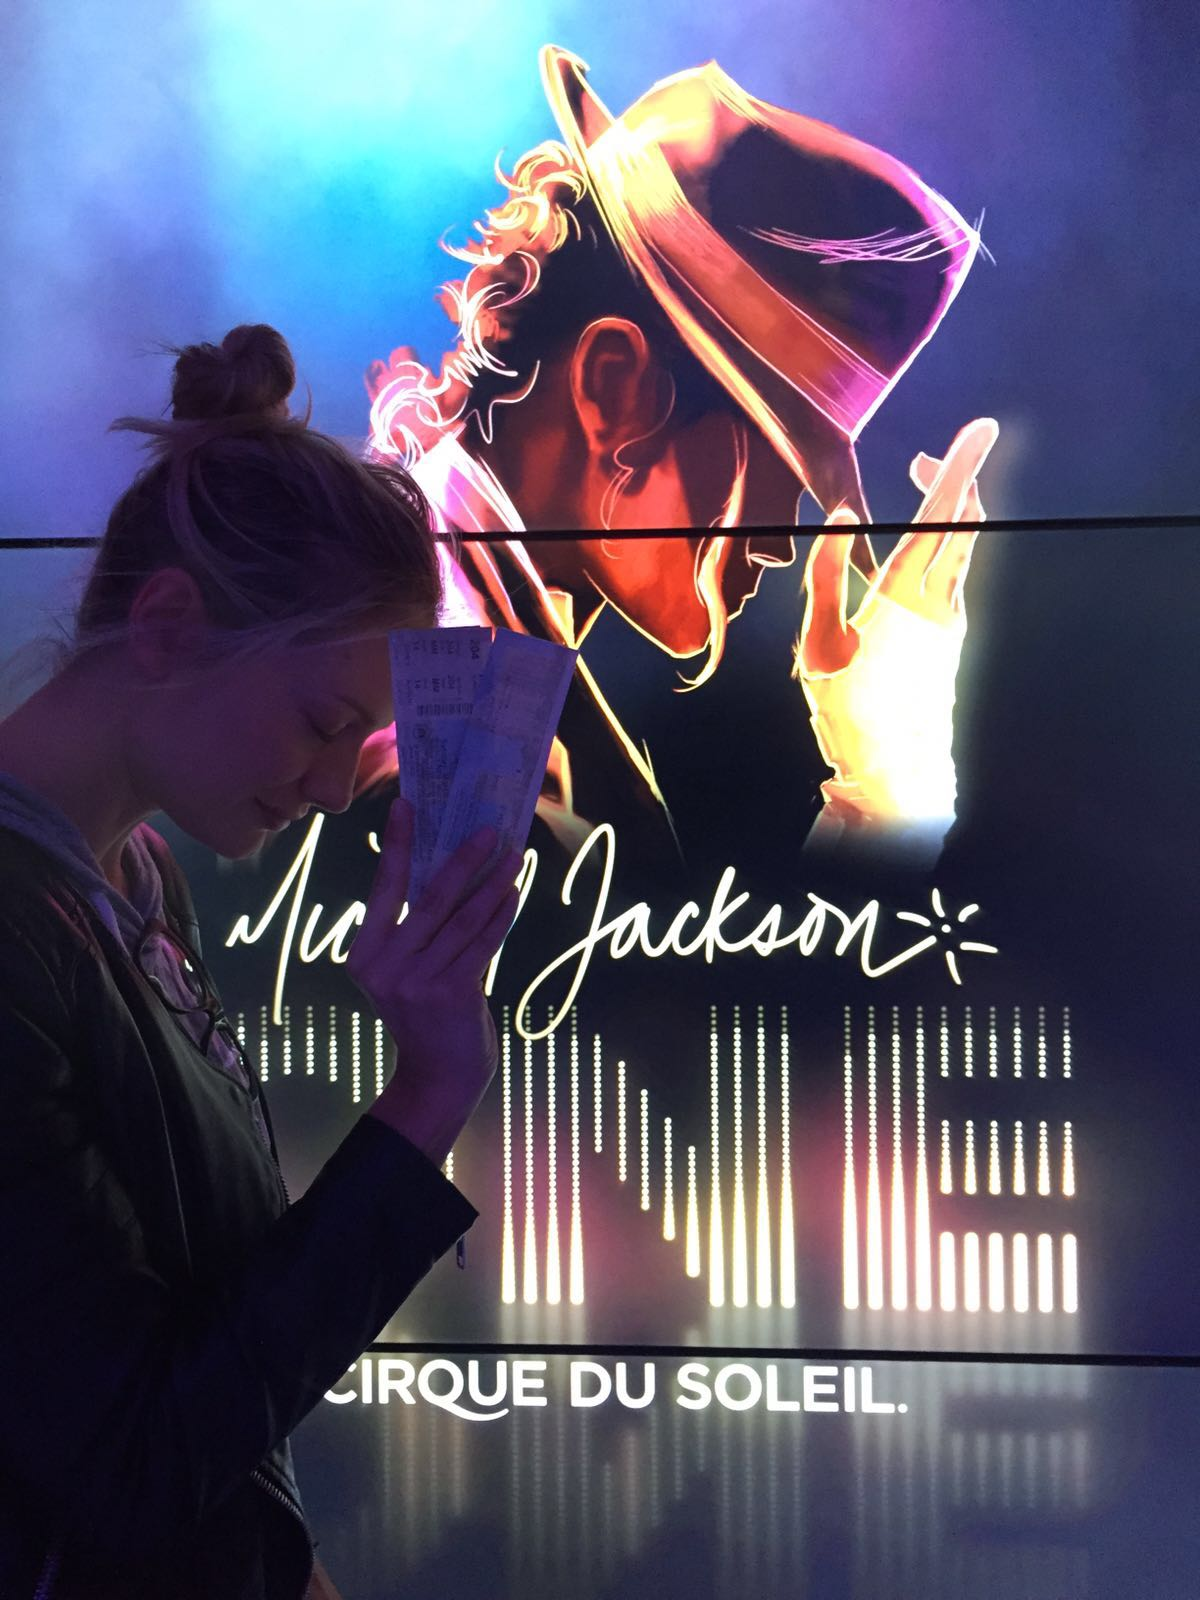 Michael was dancing with Cirque Du Soleil at the Mandalay. Goosebumps.